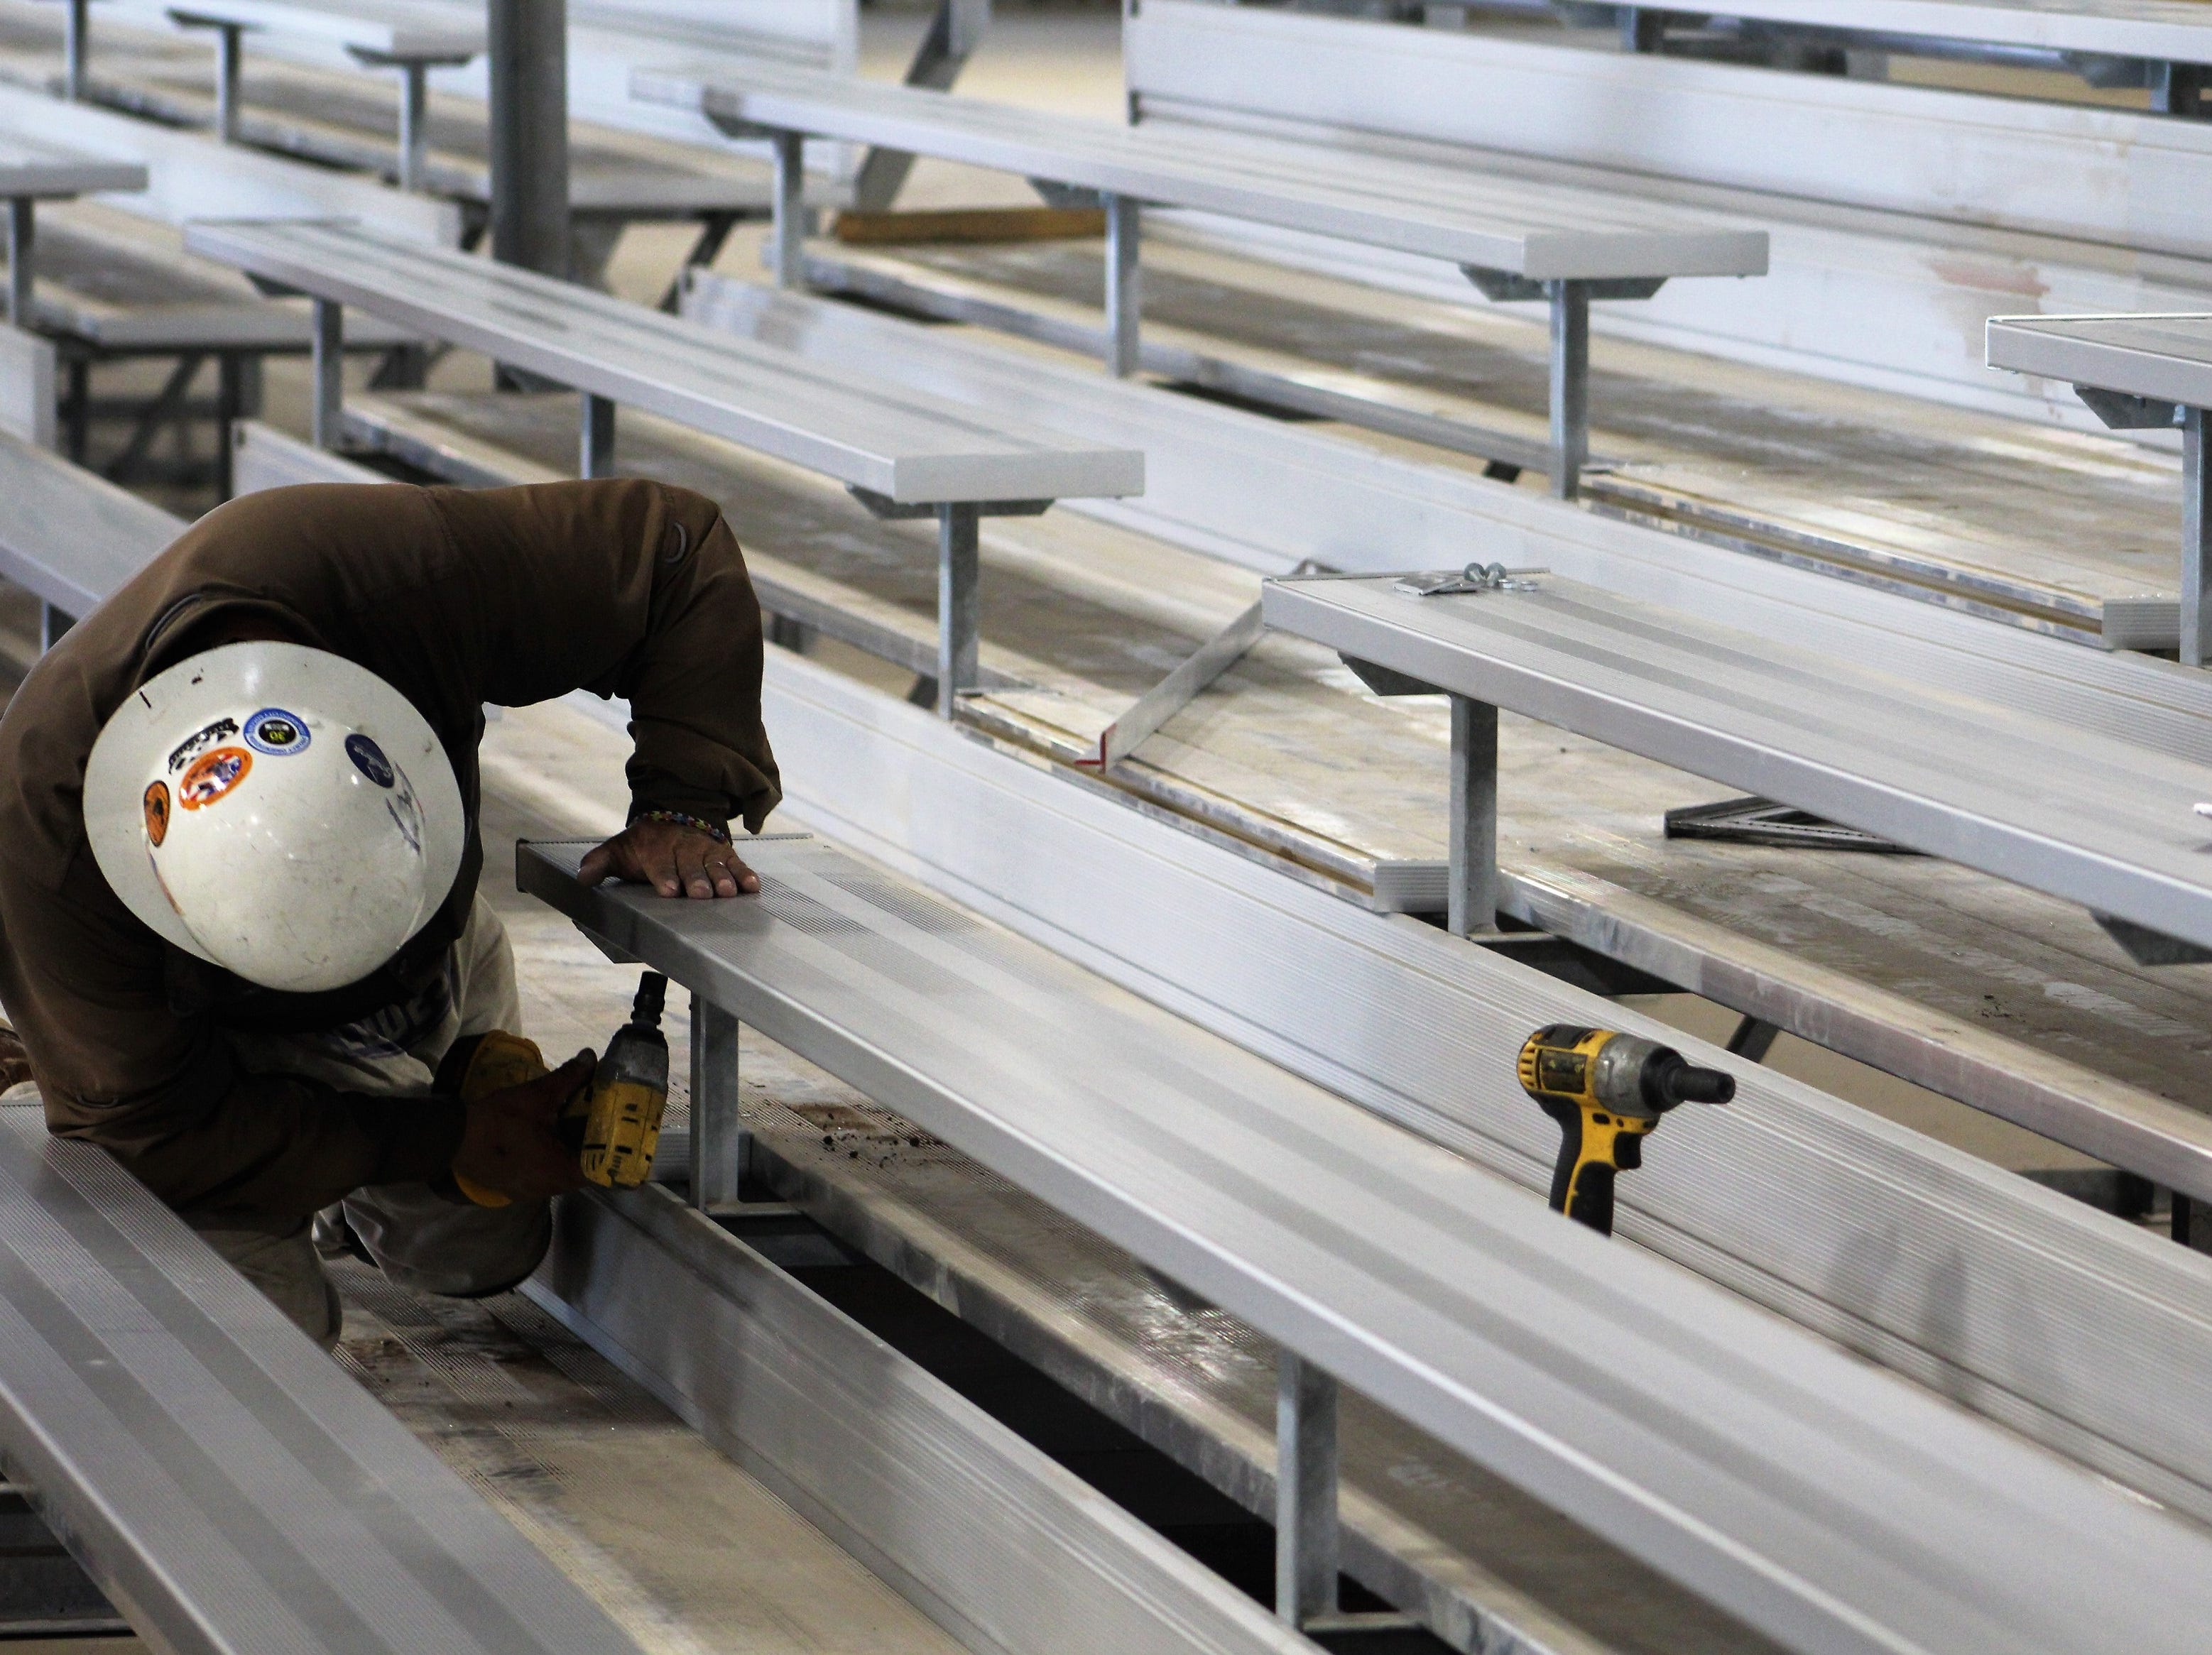 A worker secures bleacher seats Wednesday inside the new livestock barn at the Taylor County Expo Center. Metal used in the structure that is equivalent to two football fields was purchased in 2017, before prices rose. The facility will be ready for livestock shows at September's West Texas Fair & Rodeo.